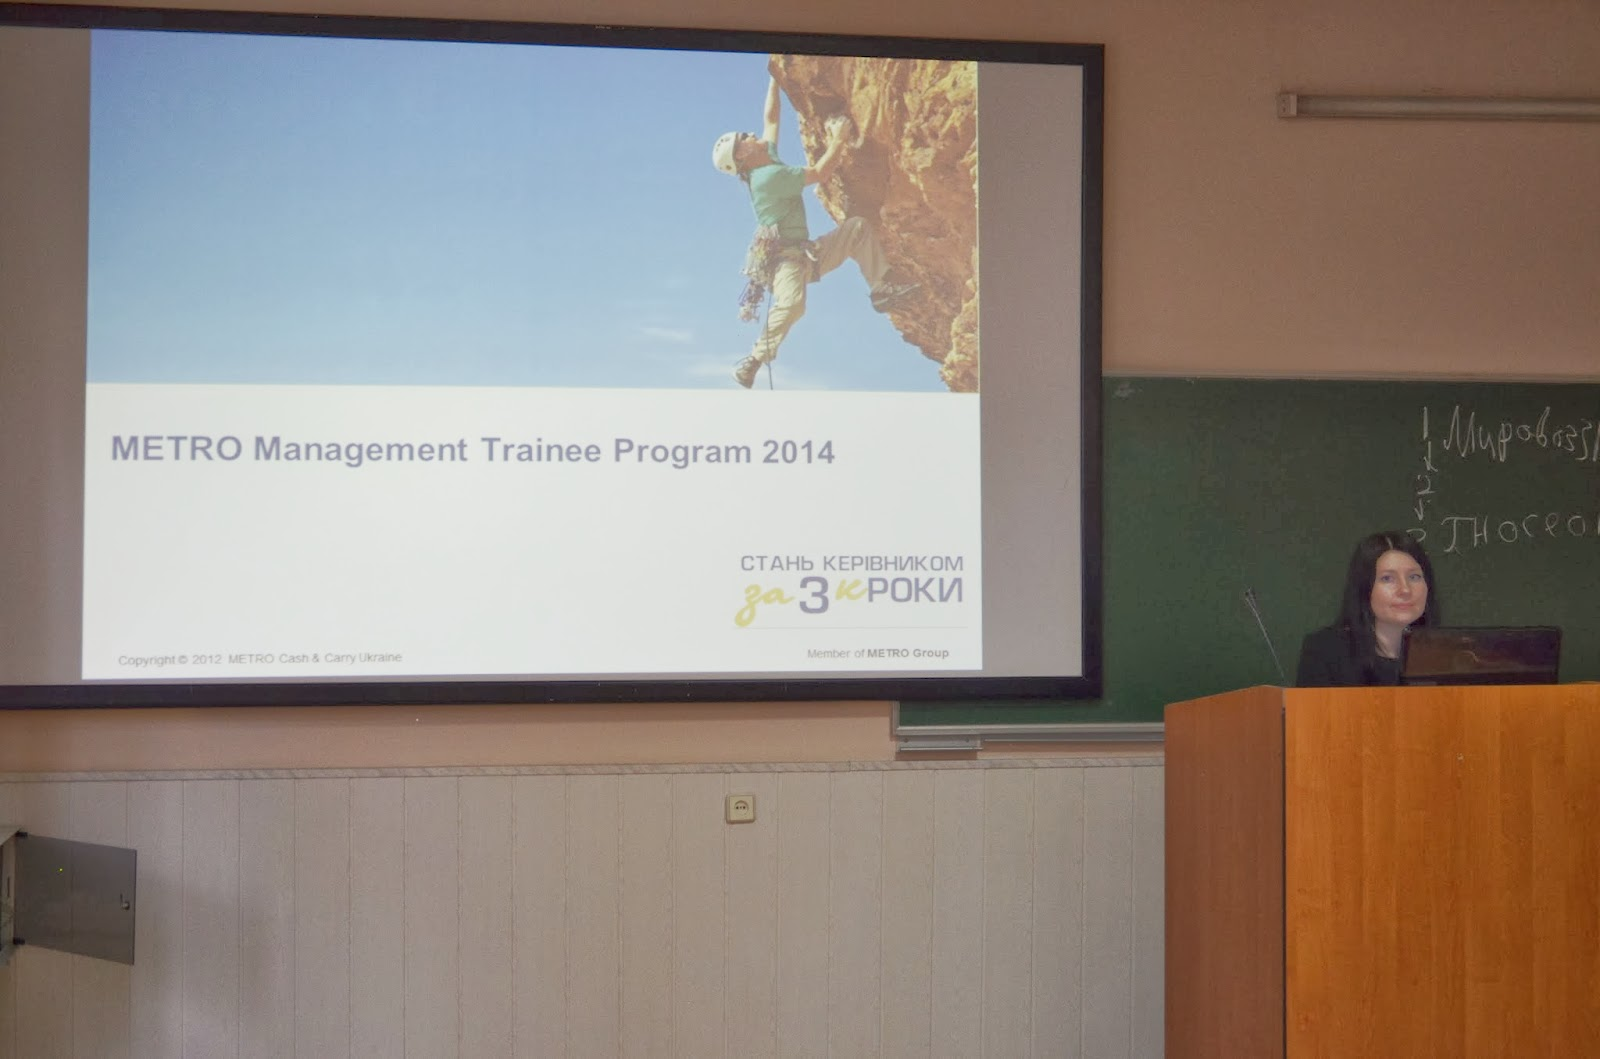 METRO Management Trainee Program